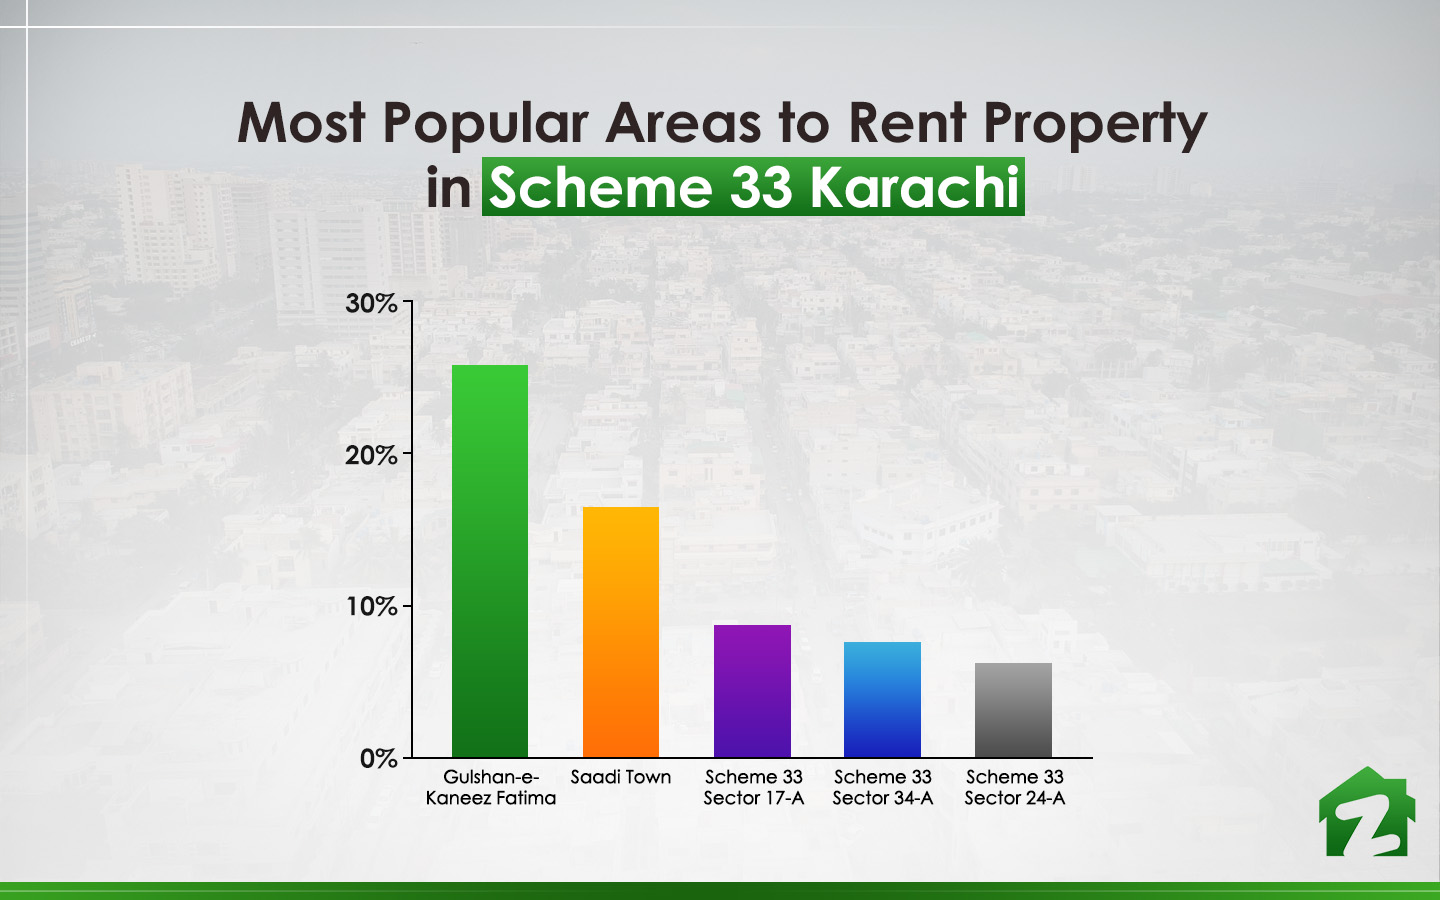 Most popular areas to rent property in Scheme 33